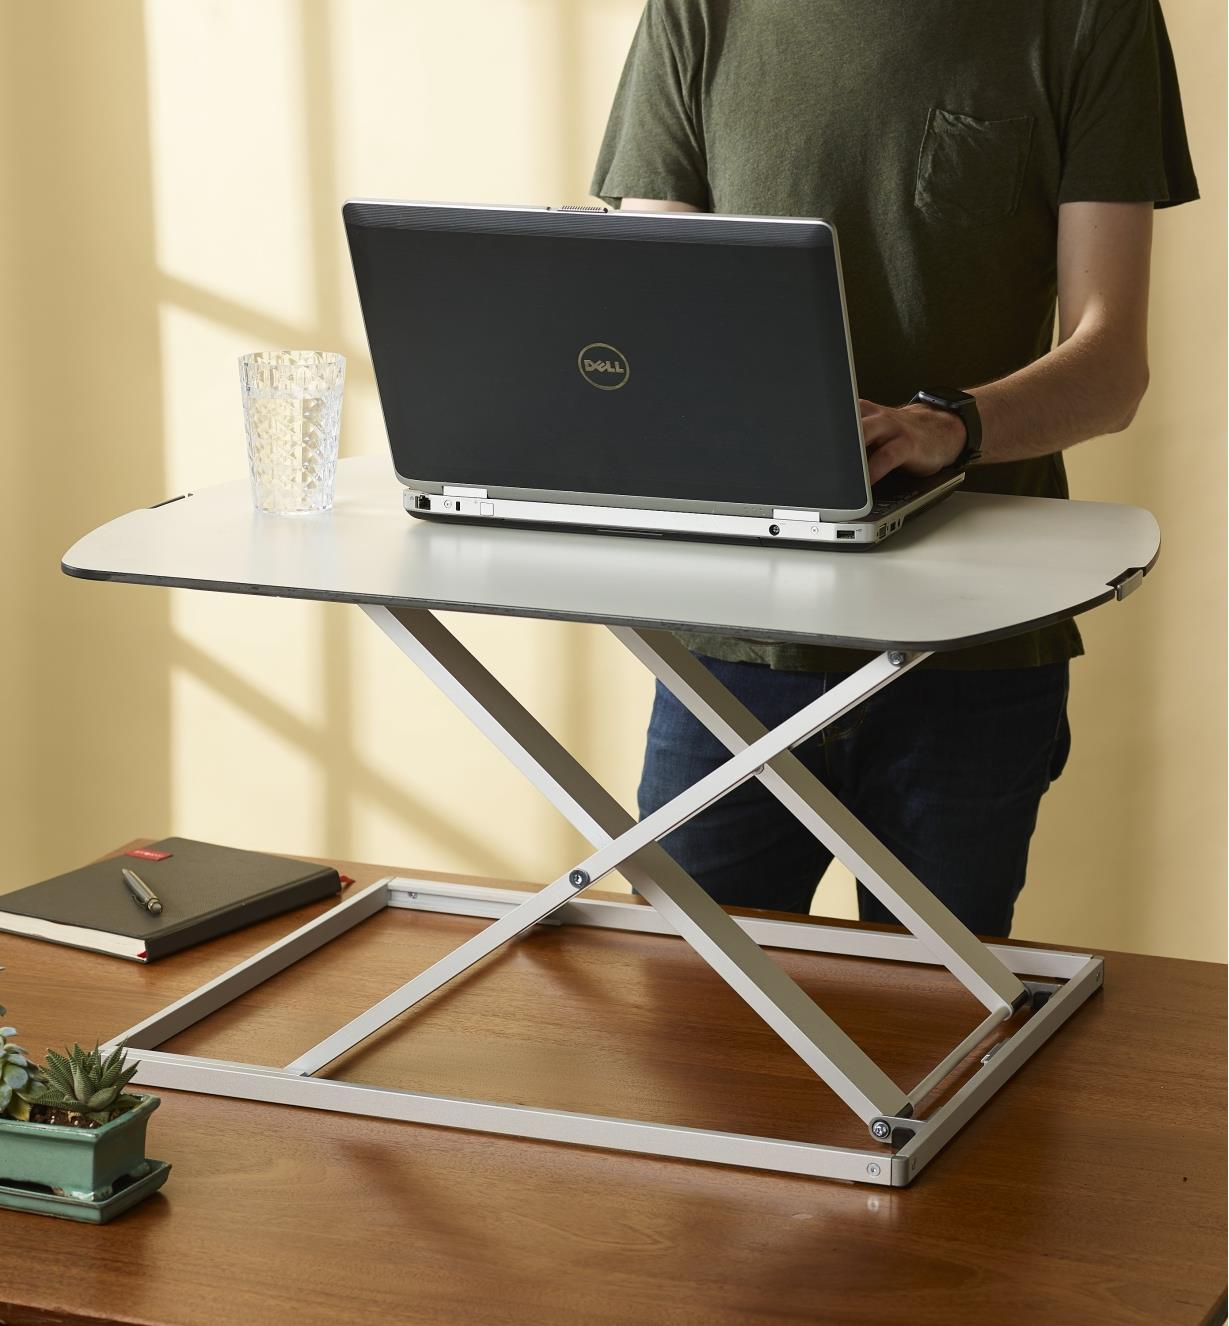 Using a laptop supported on a Height-Adjustable Work Stand